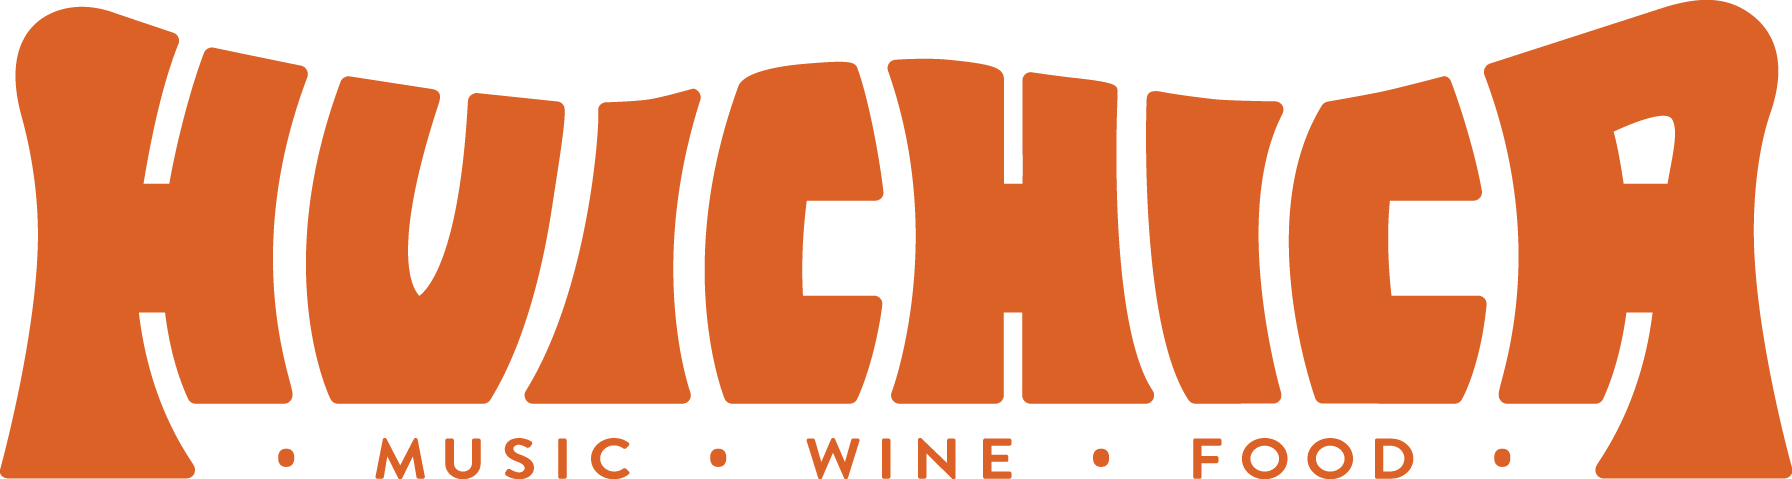 Huichica_Universal-Logo_Fill-01_Orange.png